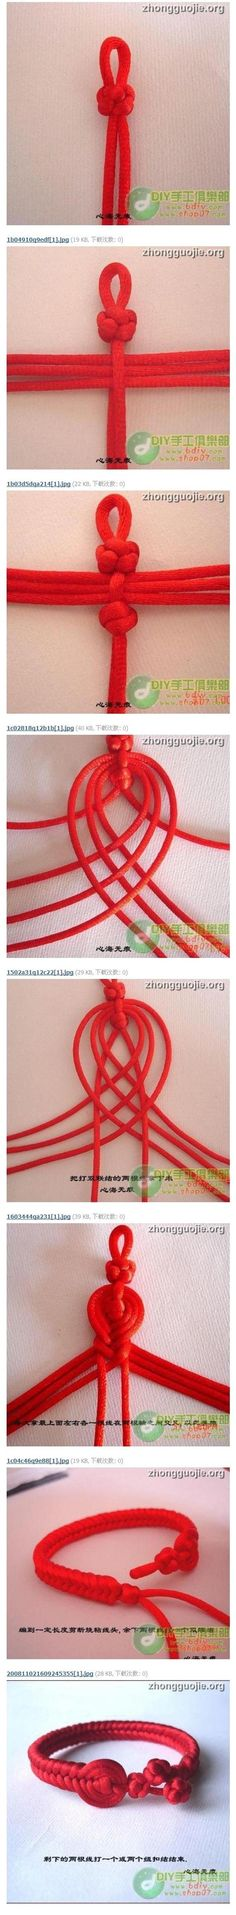 DIY Lucky knot Bracelet http://weheartit.com/entry/group/21103474